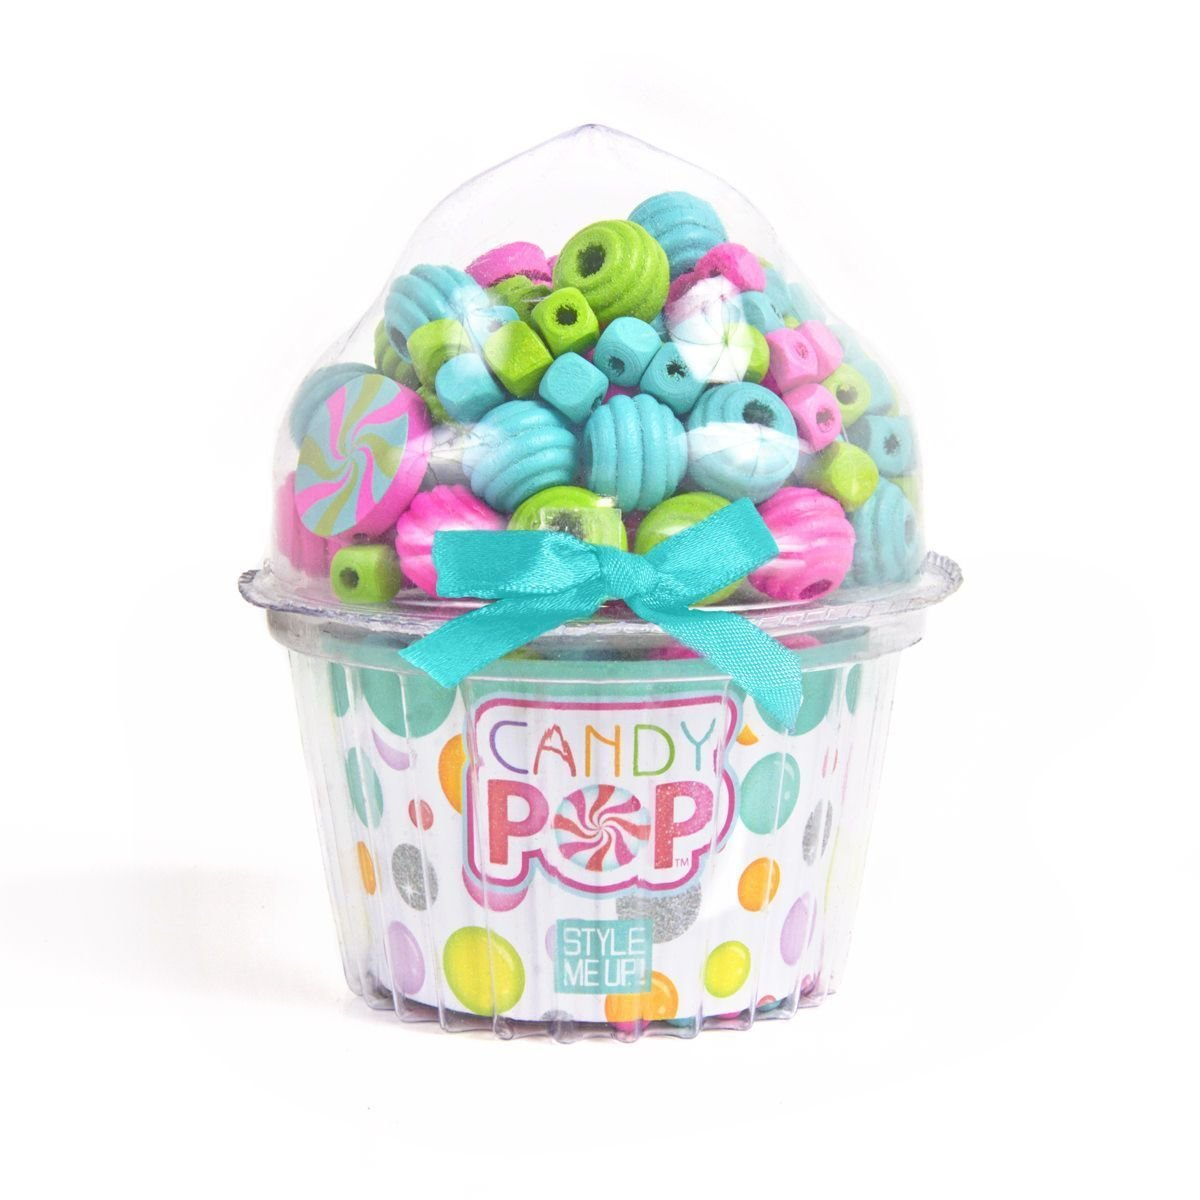 Style Me Up! Candy Pop - Candy Pop to Go - Cupcake Blue